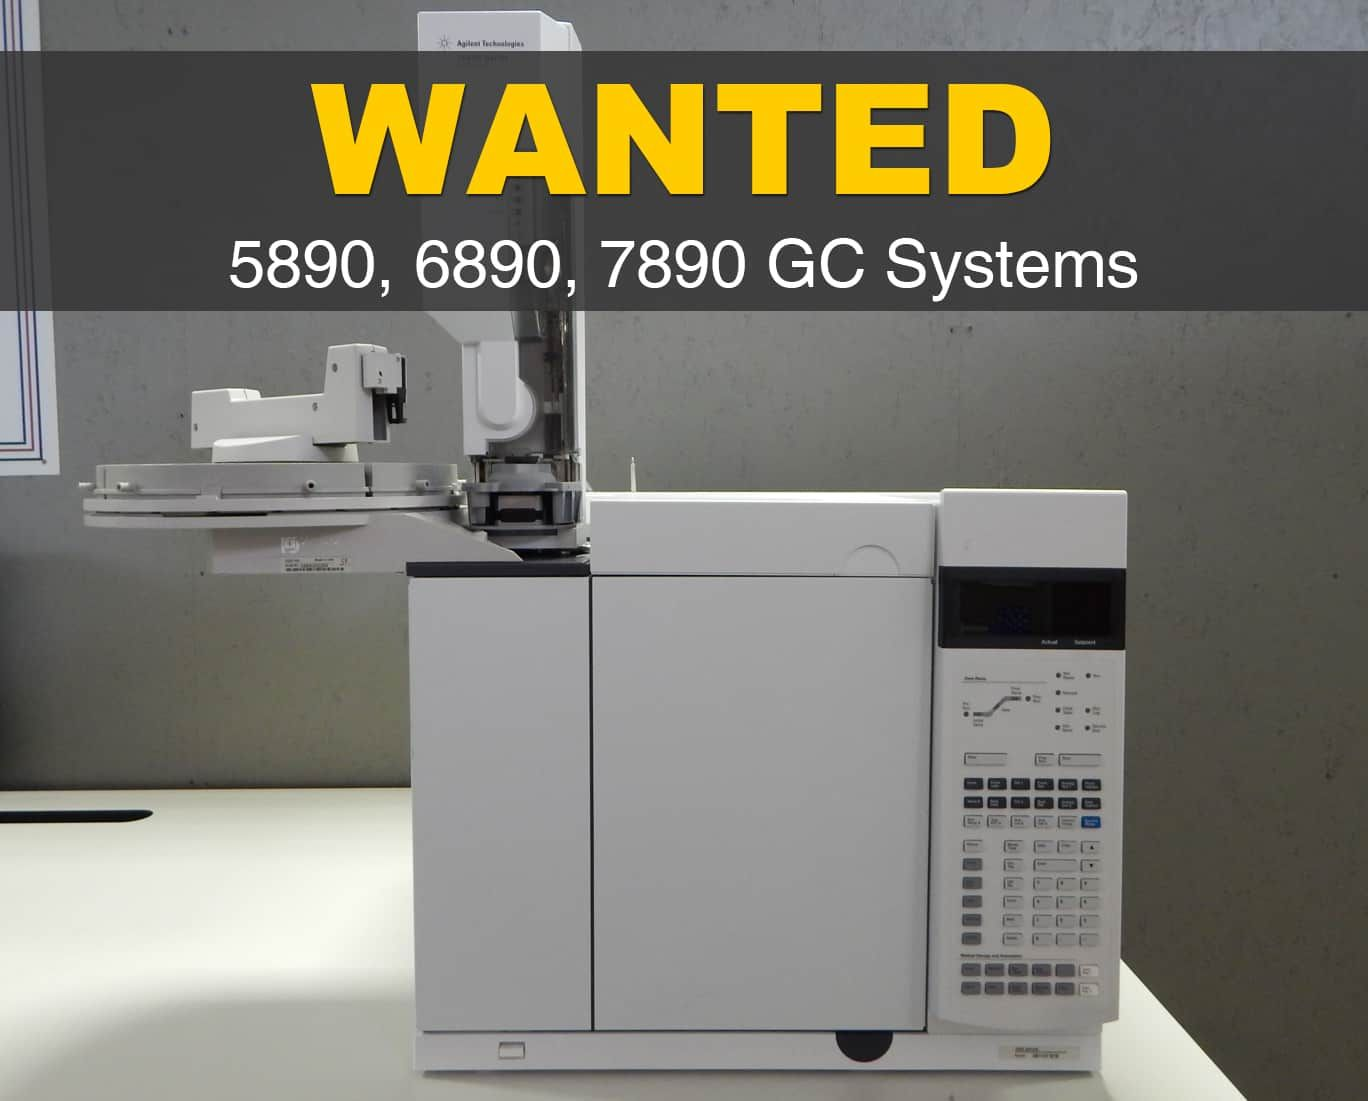 WANTED - Agilent 5890, 6890, & 7890 GC Systems